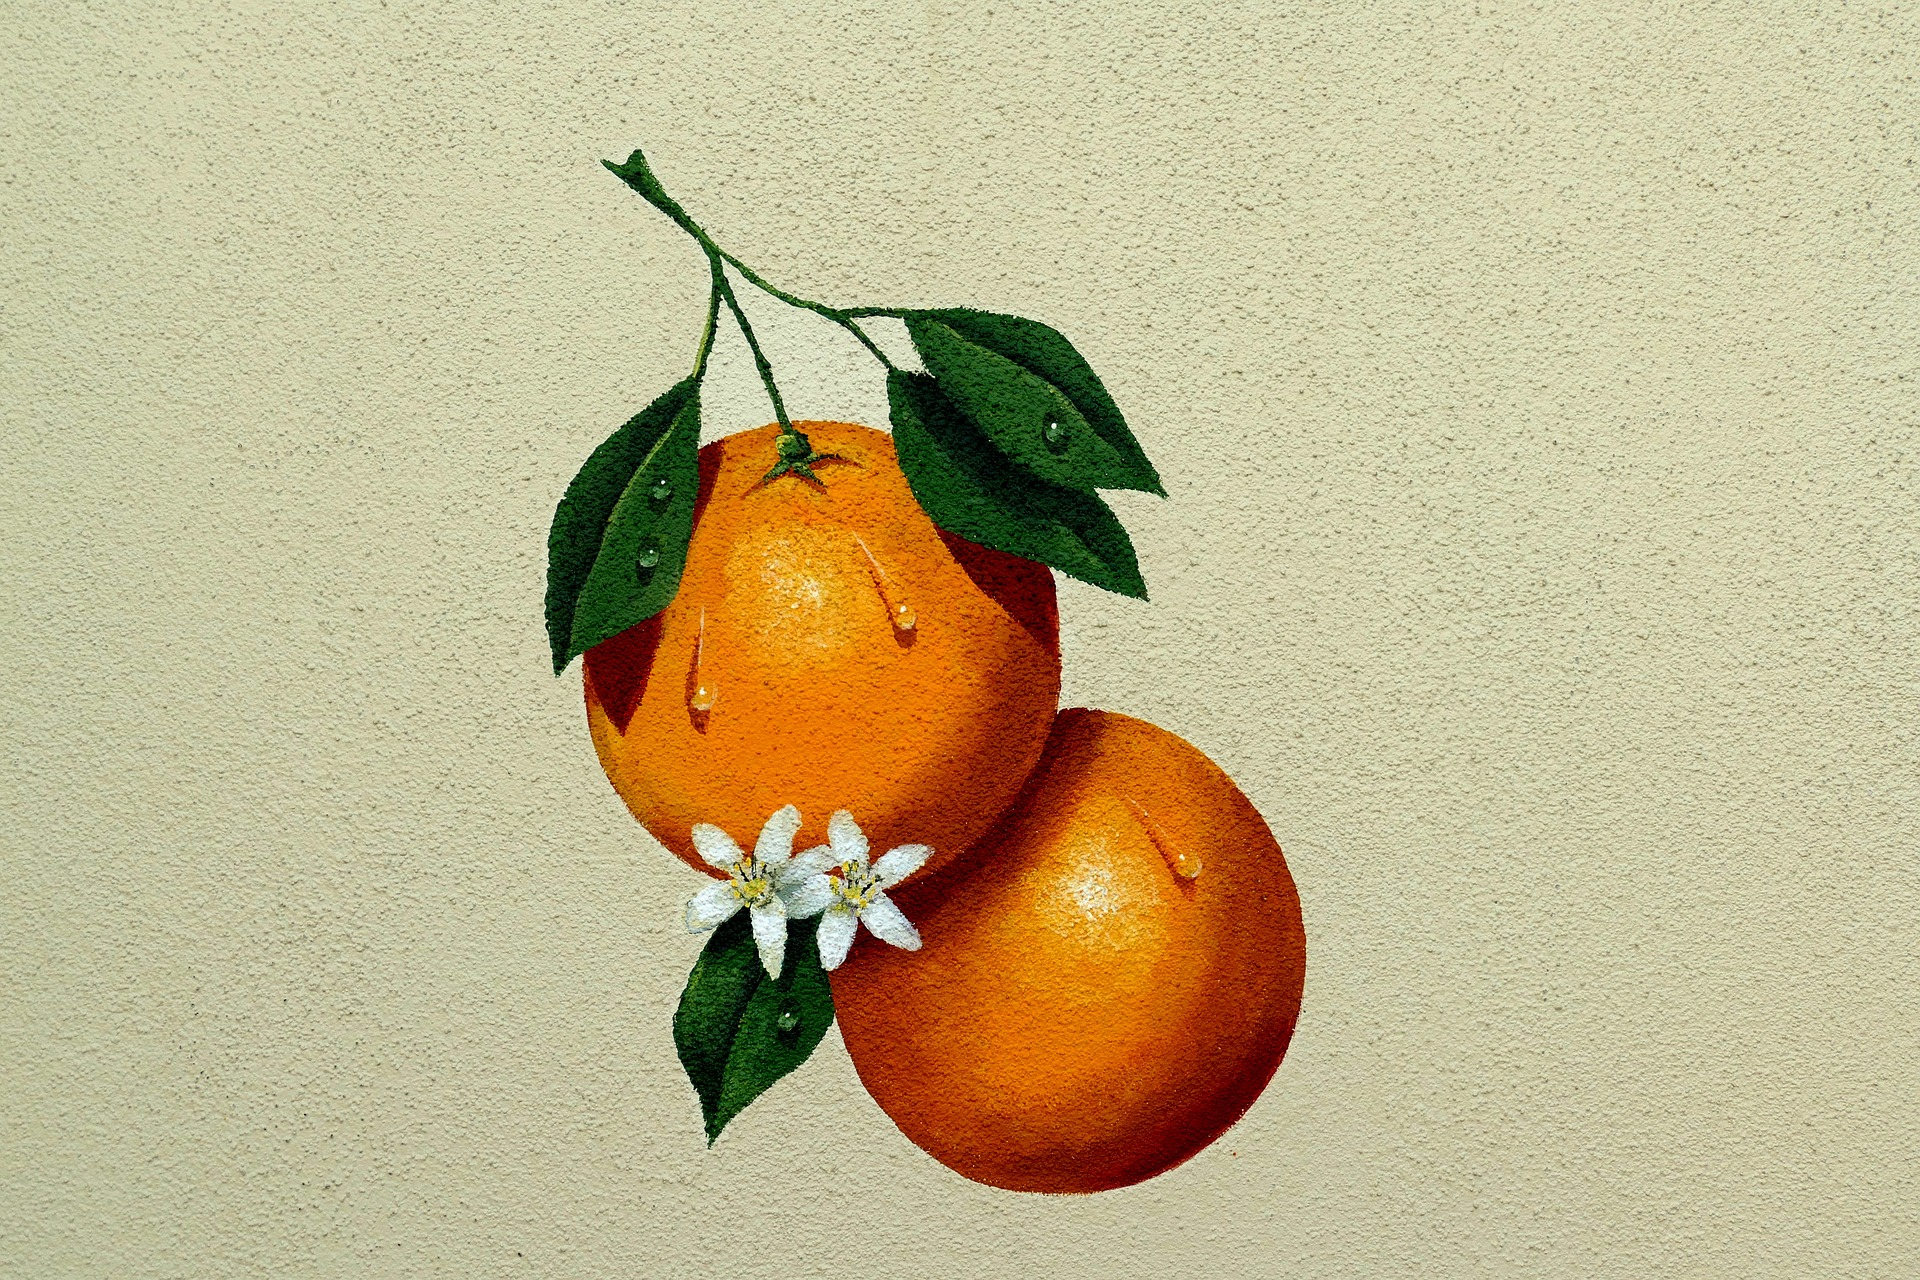 A painting of a tangerine